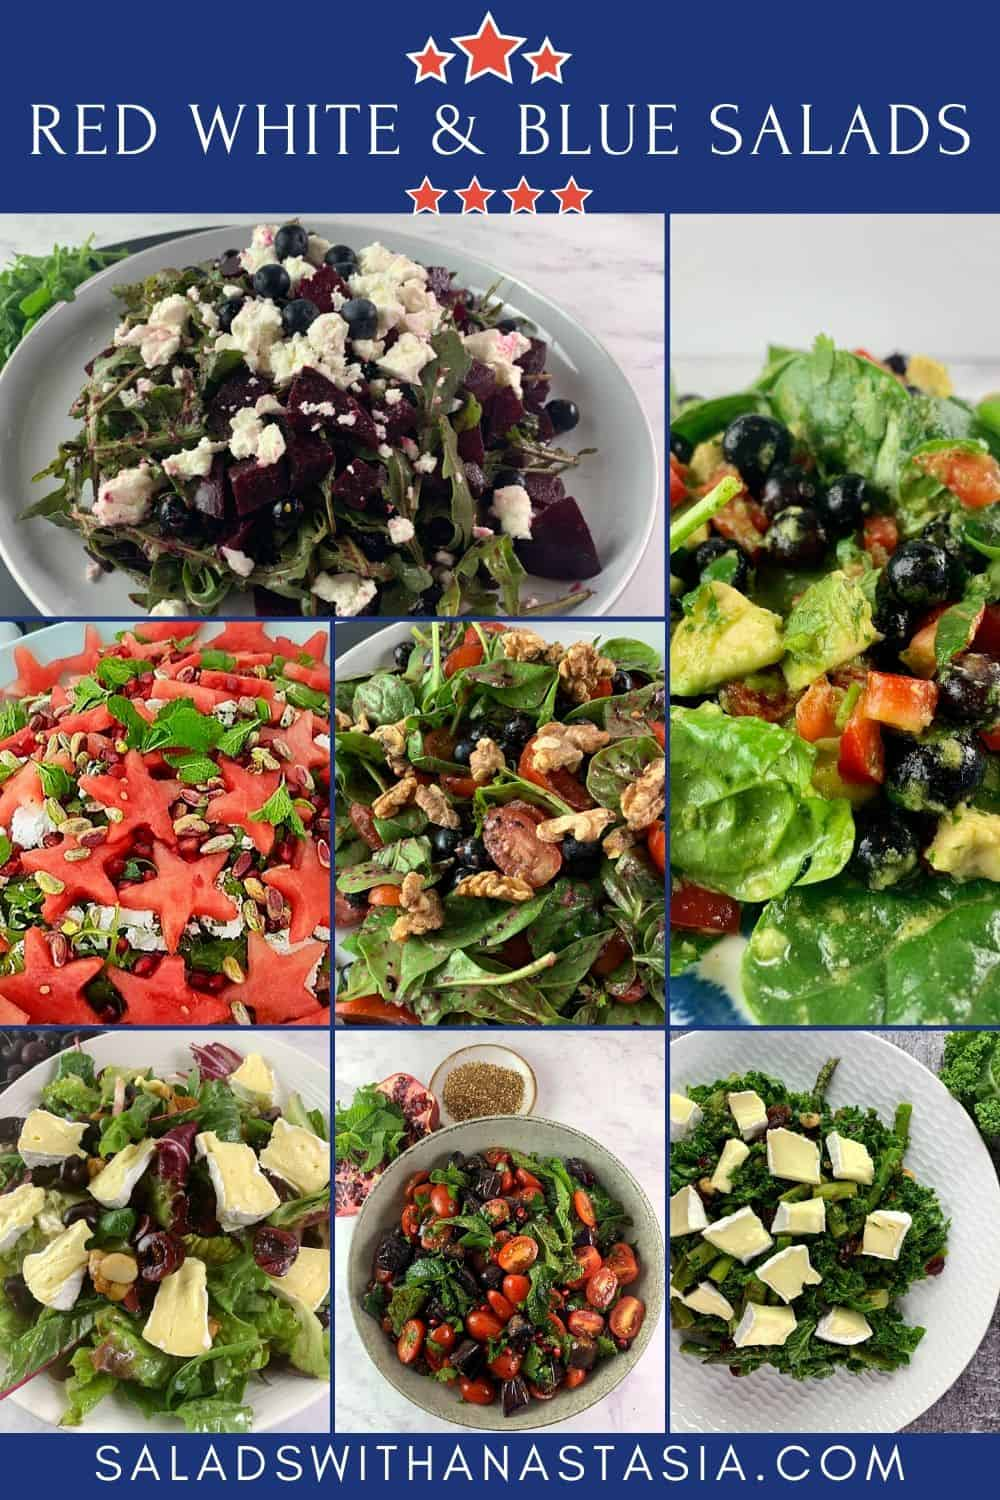 RED WHITE & BLUE SALAD COLLECTION WITH TEXT OVERLAY